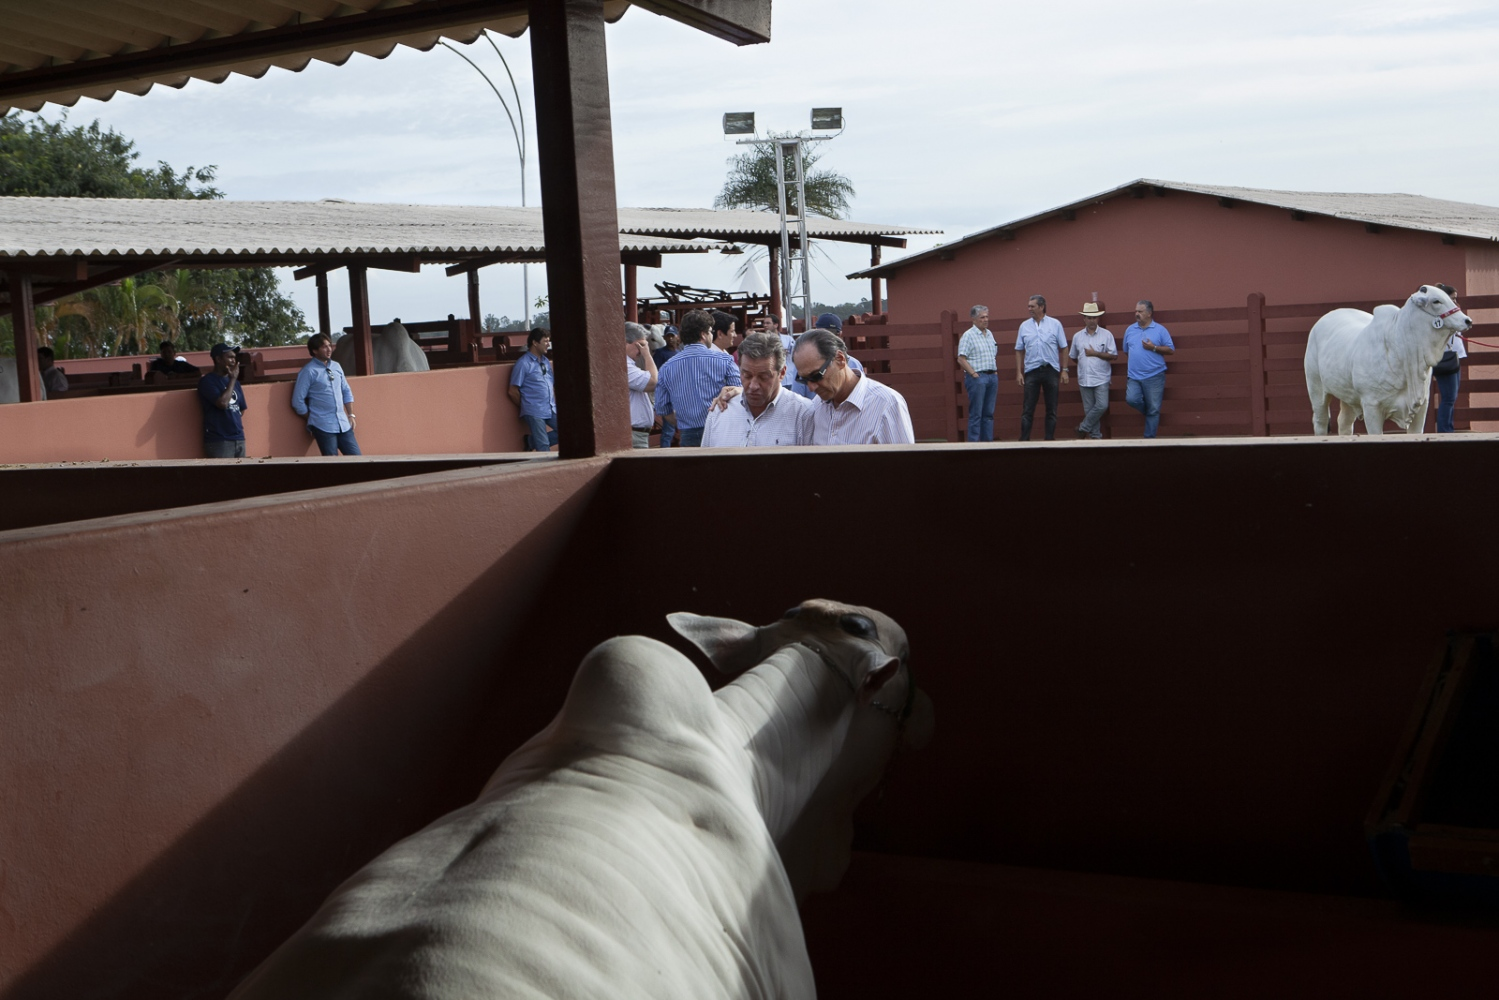 Talk and negotiation between farmers in an auction during Expozebu. Uberaba, Brazil, 2013.